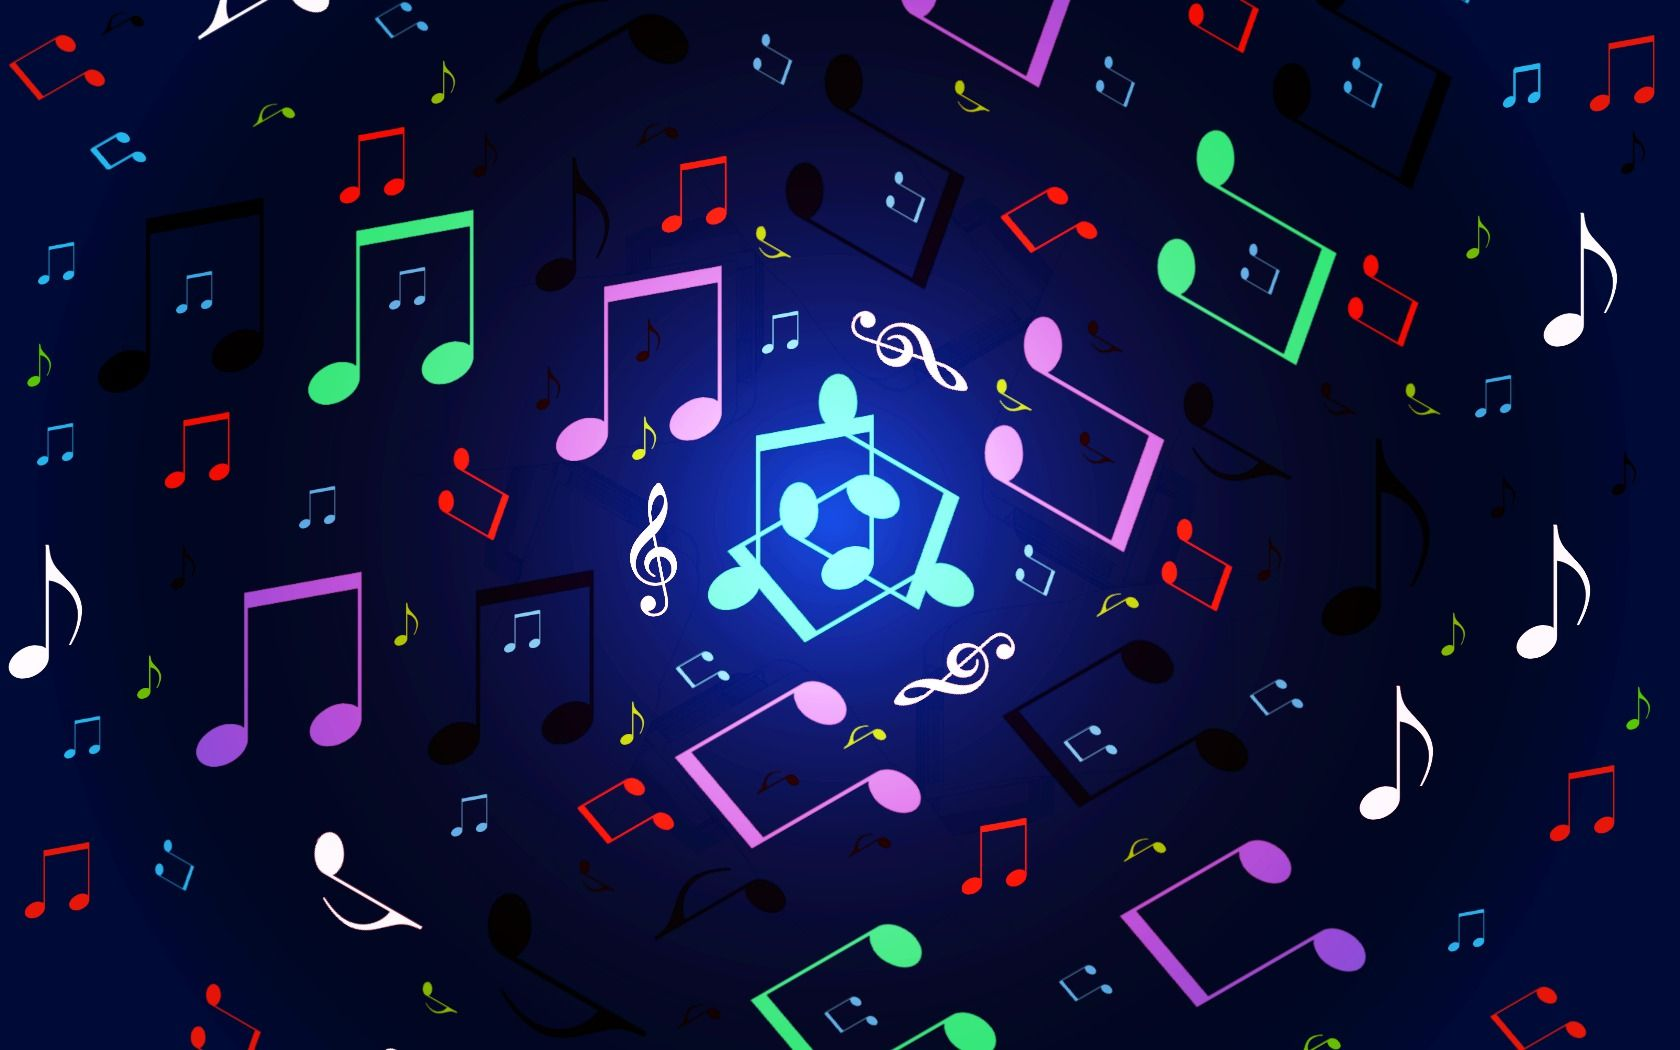 Pin By Asadul Ibad On My Style Music Wallpaper Music Music Notes